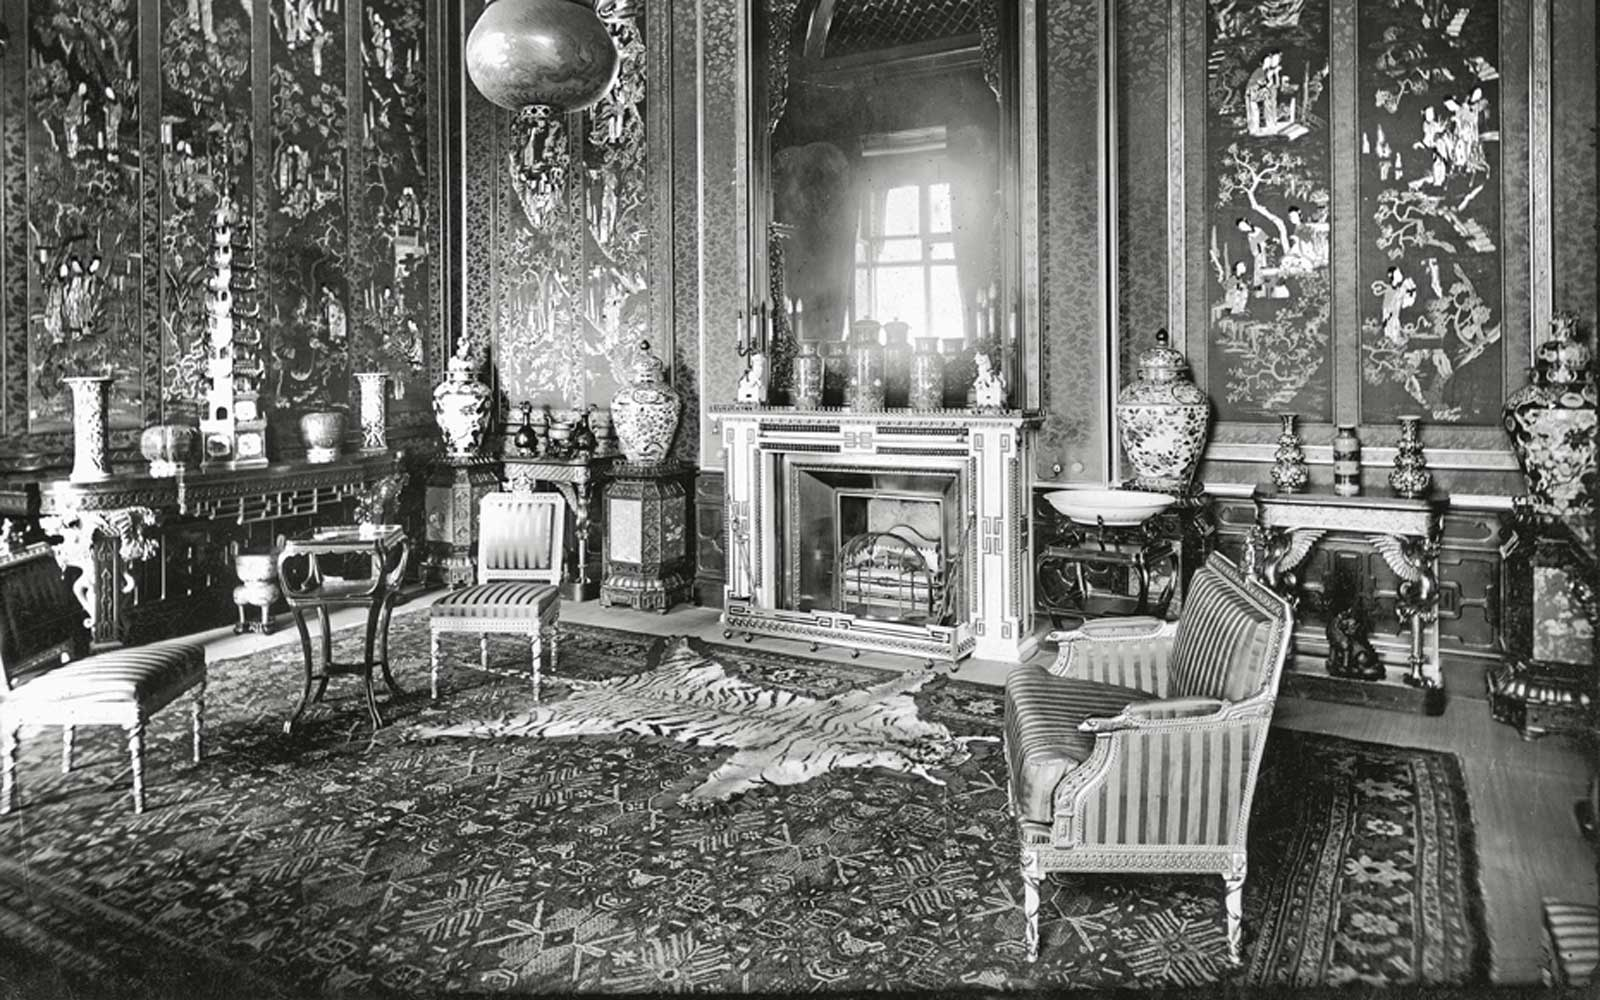 The Chinese Room circa 1930